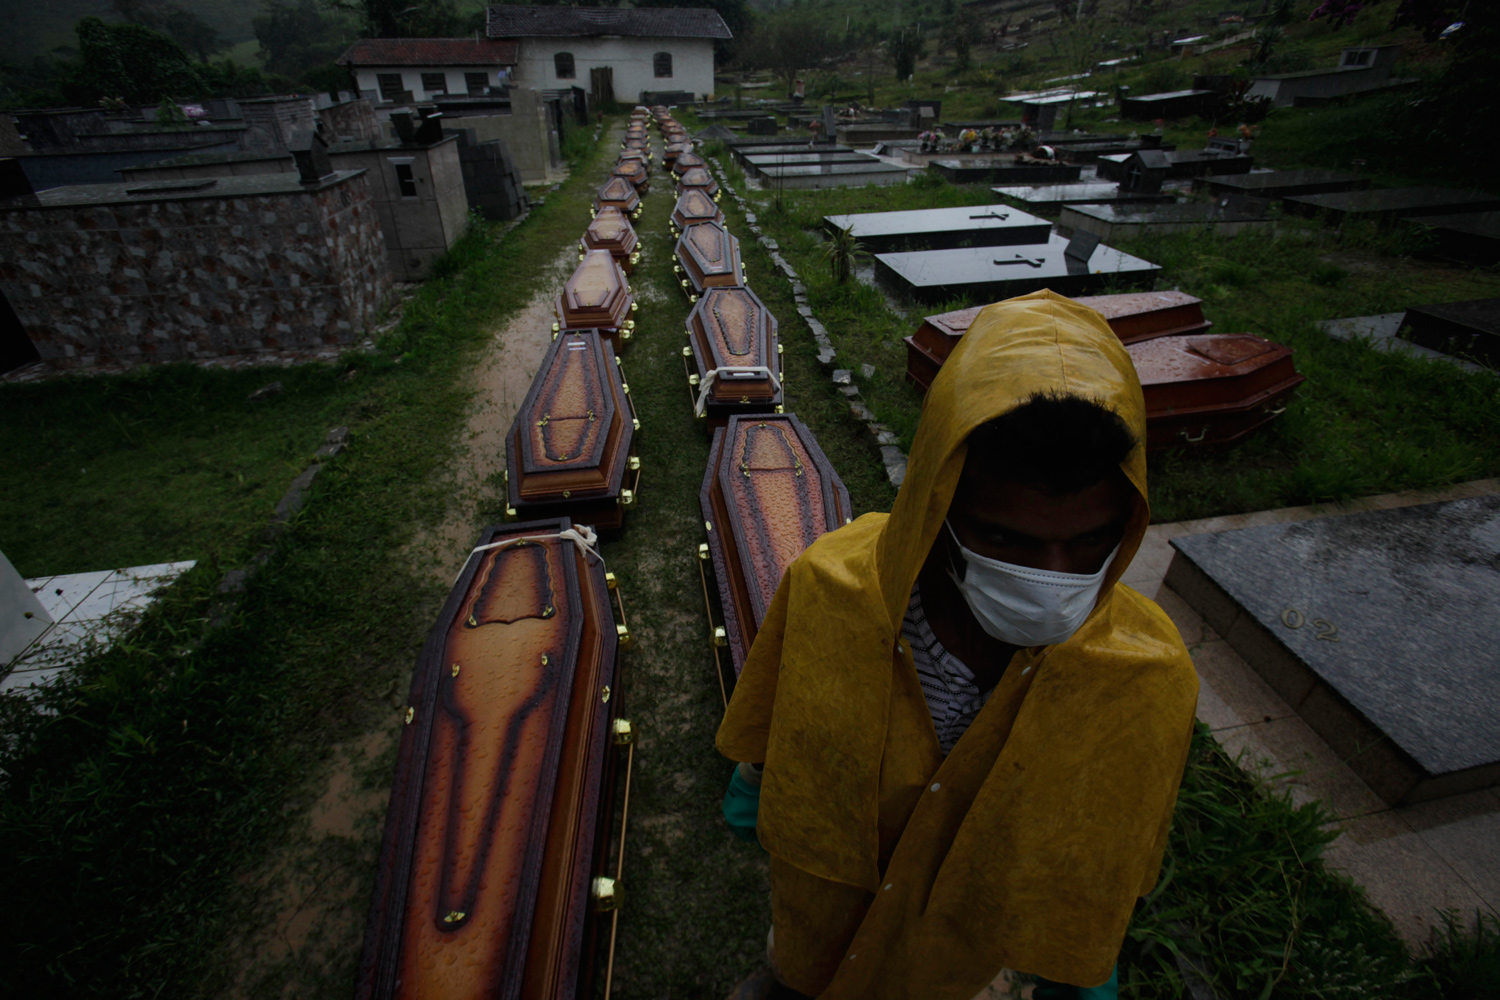 Janurary 15, 2011. A worker stands next to coffins of victims of landslides at a cemetery in Nova Friburgo. Nearly four days after rains sparked floods and massive landslides, officials in the Brazilian town of Teresopolis were still struggling to cope with the catastrophe that killed at least 564 people in the region north of Rio de Janeiro.